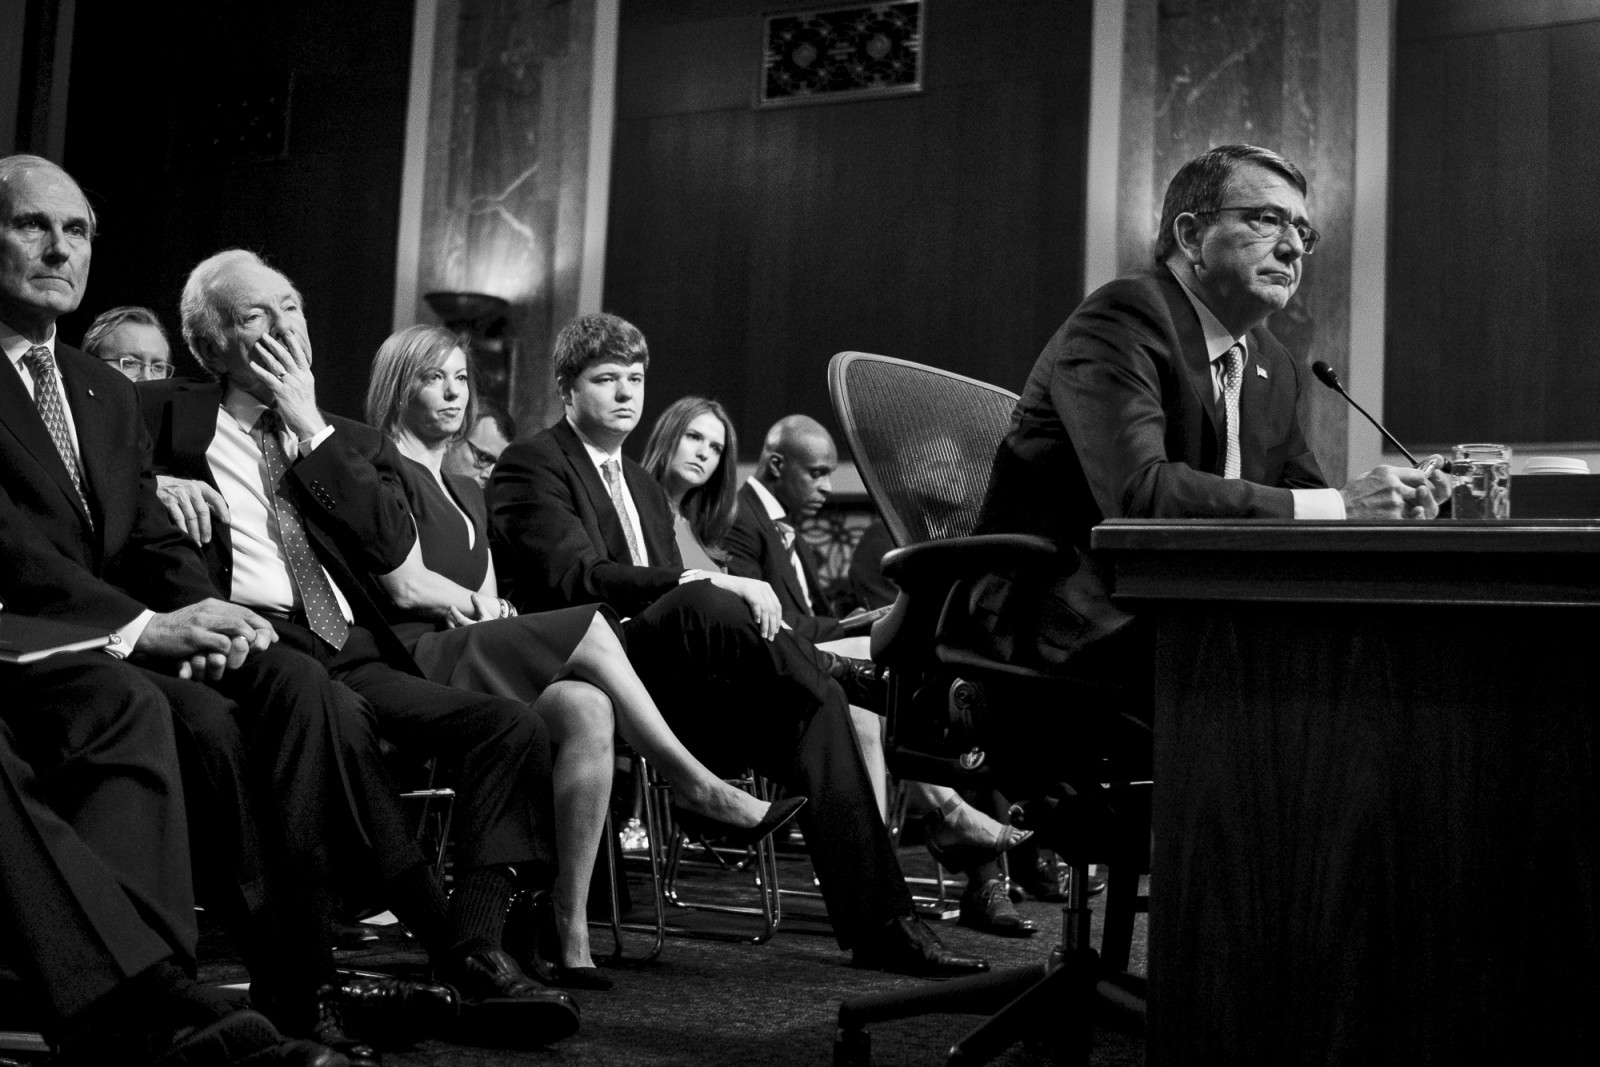 Former Deputy Secretary of Defense, Ashton Carter, testifies before the Senate Armed Services Committee on Capitol Hill during a hearing on his nomination to be Defense Secretary on February 4, 2015. Carter is expected to be approved by the Senate, but still underwent a grilling from lawmakers President Obama's national security policies.